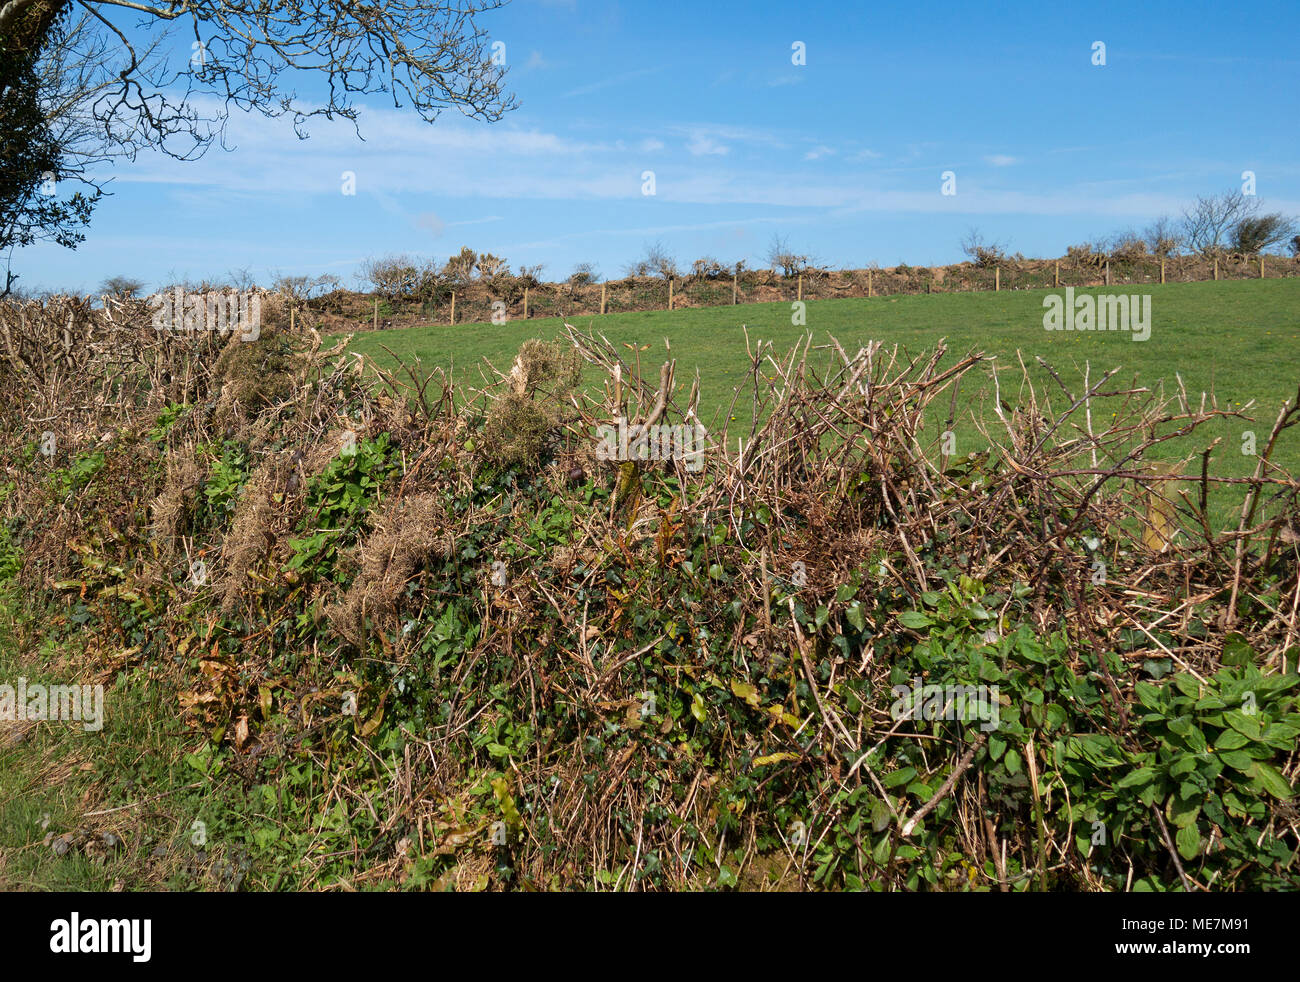 coppiced and trimmed hedgerow in the cornish countryside, england, britain, uk. - Stock Image